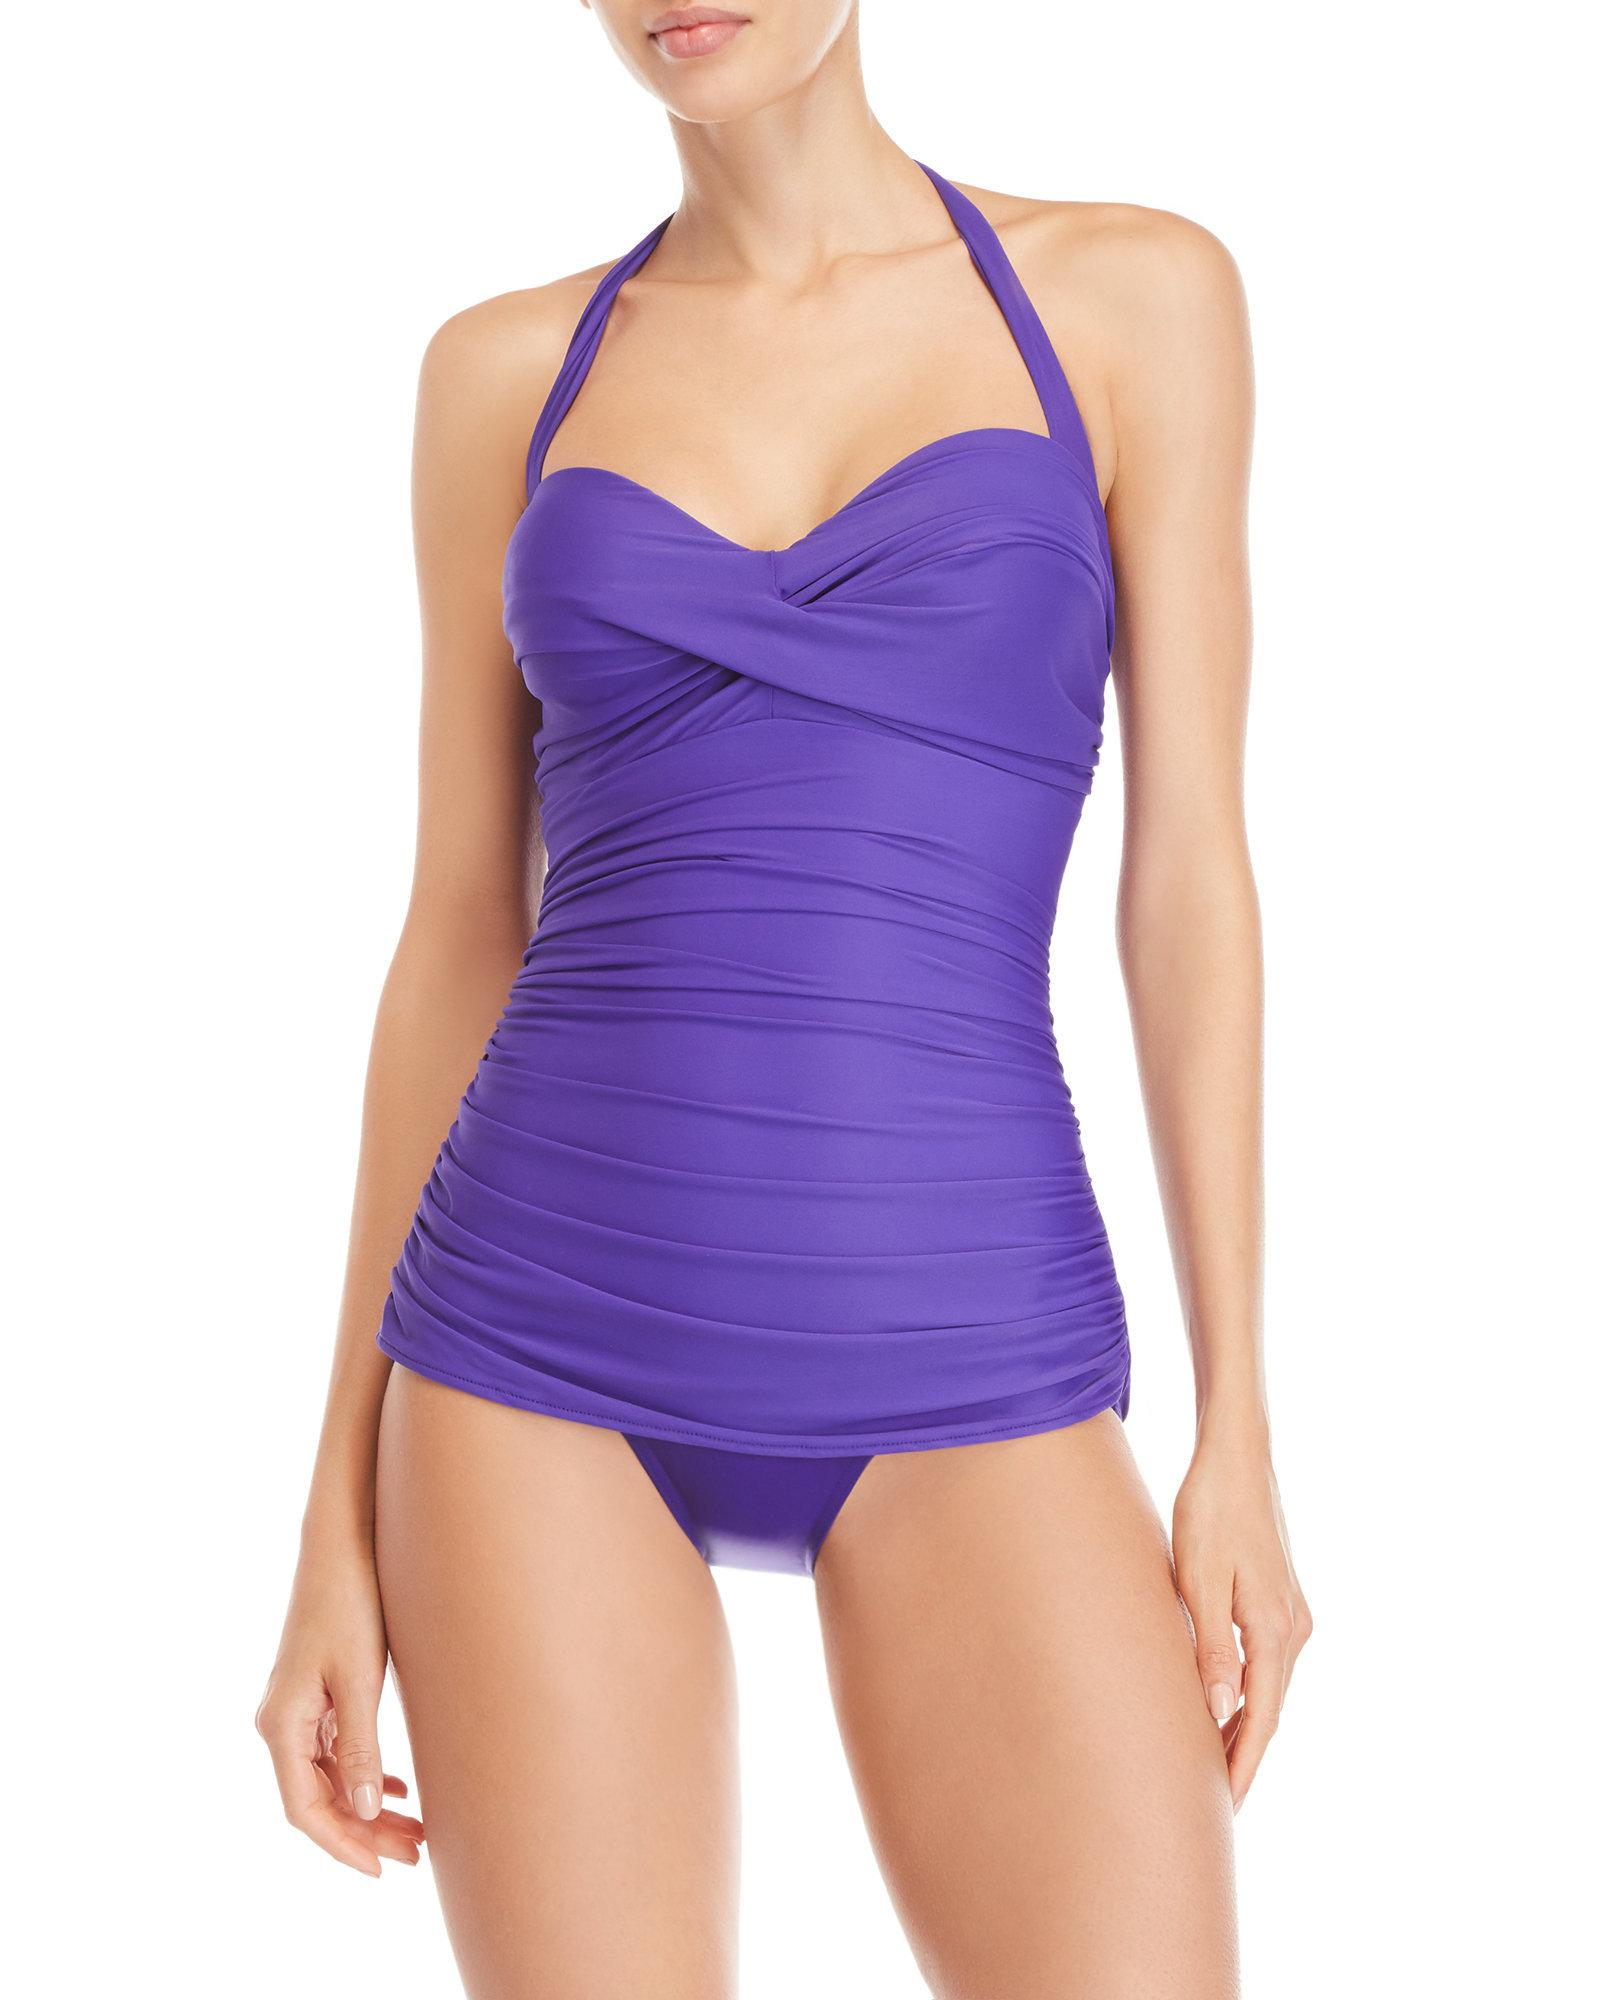 b9dc4f3cae185 Lyst - Miraclesuit Purple Caitlin Halter Neck One-piece Swimsuit in ...